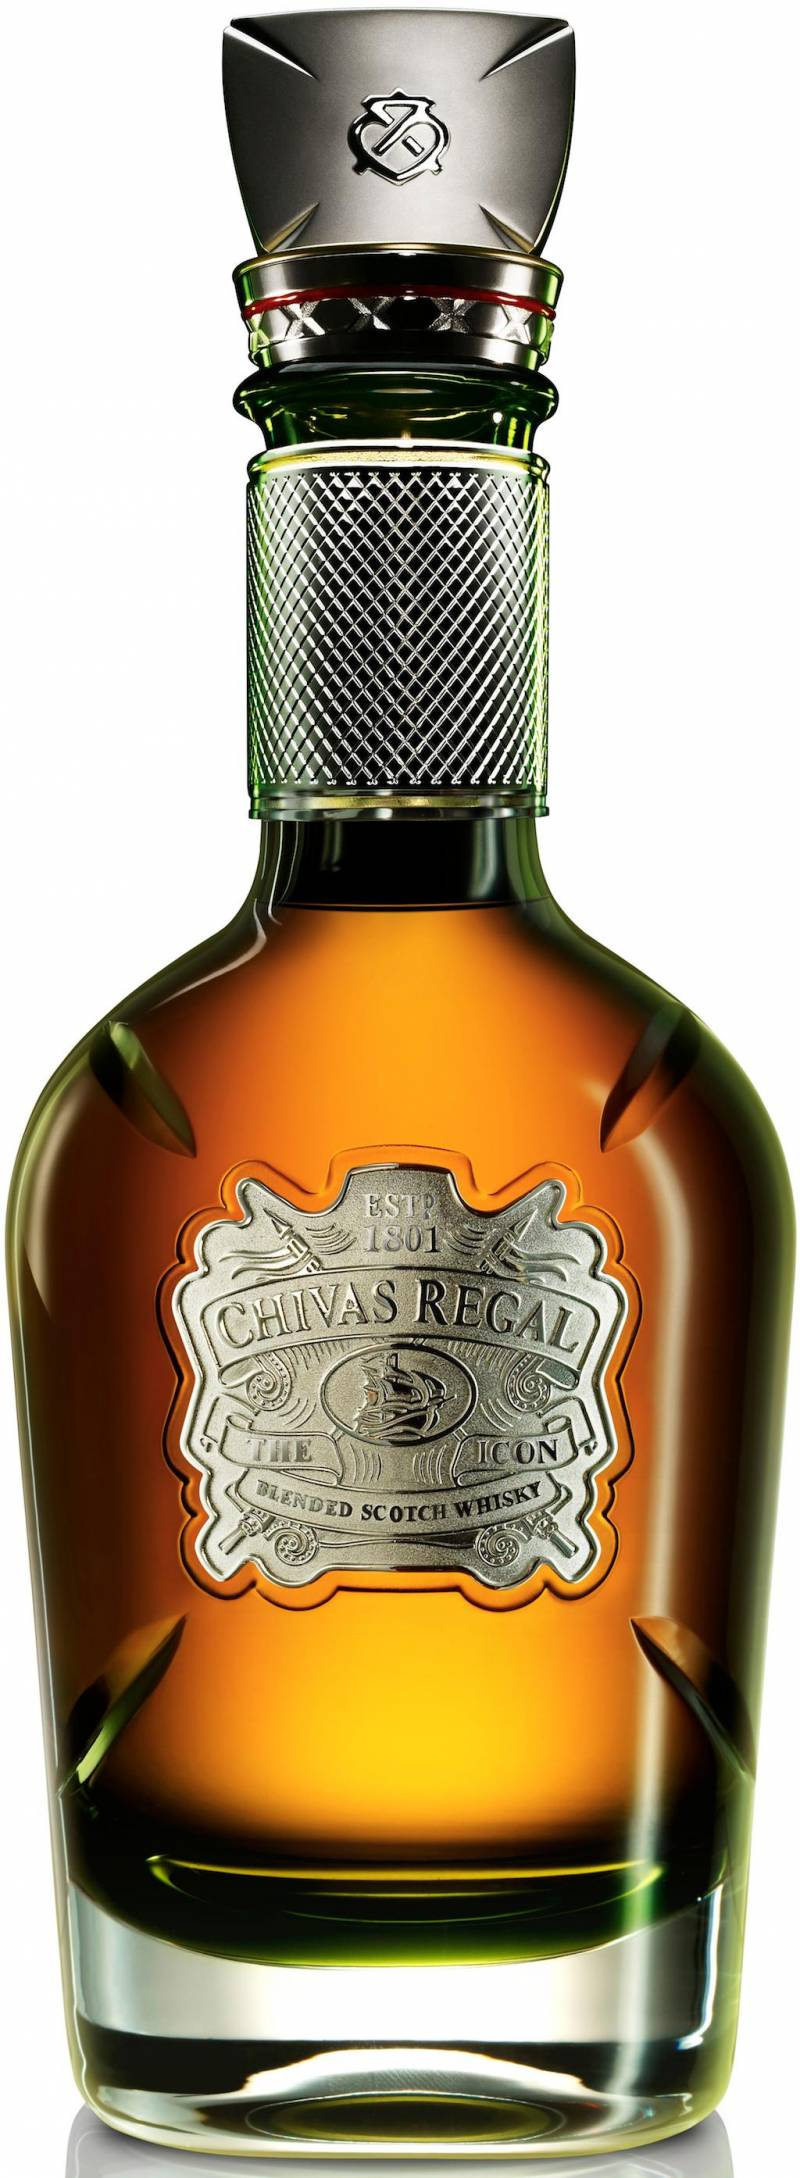 "Виски Чивас Ригал Айкон 0,7 л. ""Chivas Regal The Icon Whiskey """